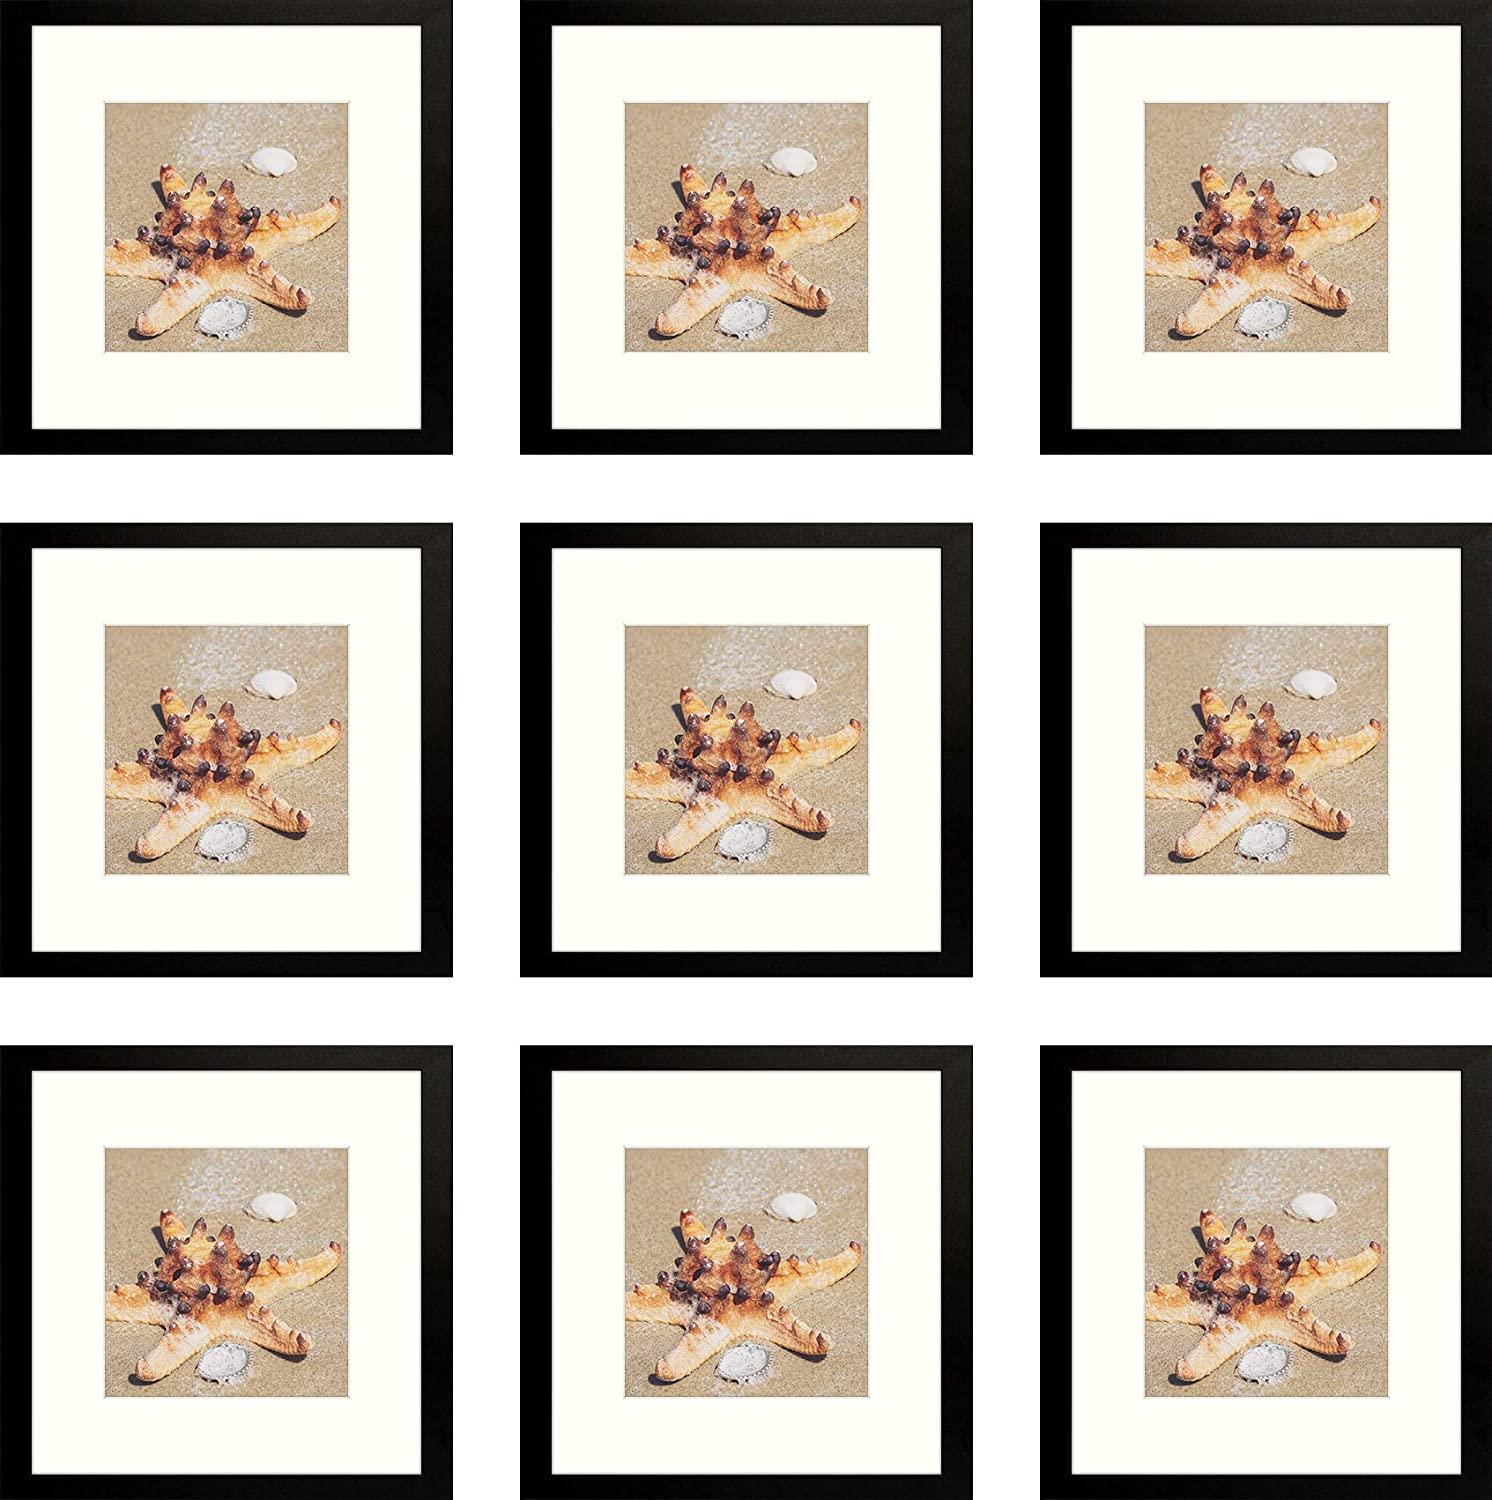 Golden 訳あり State Art 12x12 Frame with Displays Pictu 8x8 開催中 Square Mat